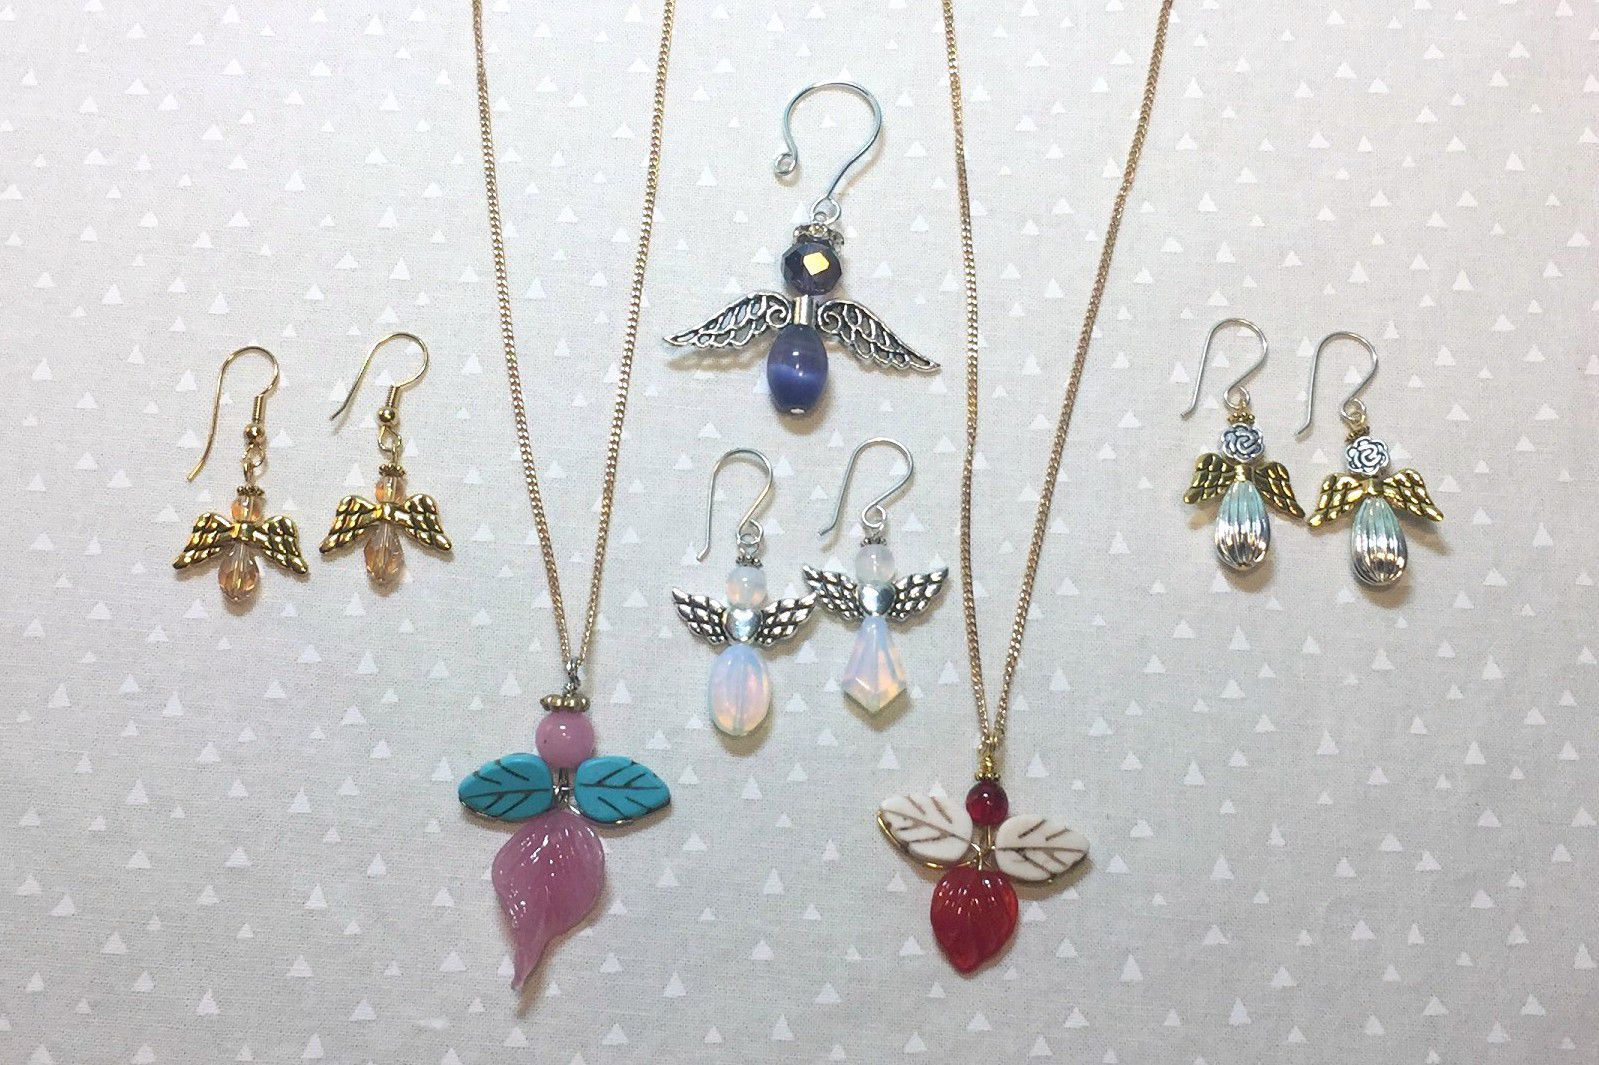 Bead Angel Earrings, Charm and Holiday Ornament Tutorial | Pinterest ...